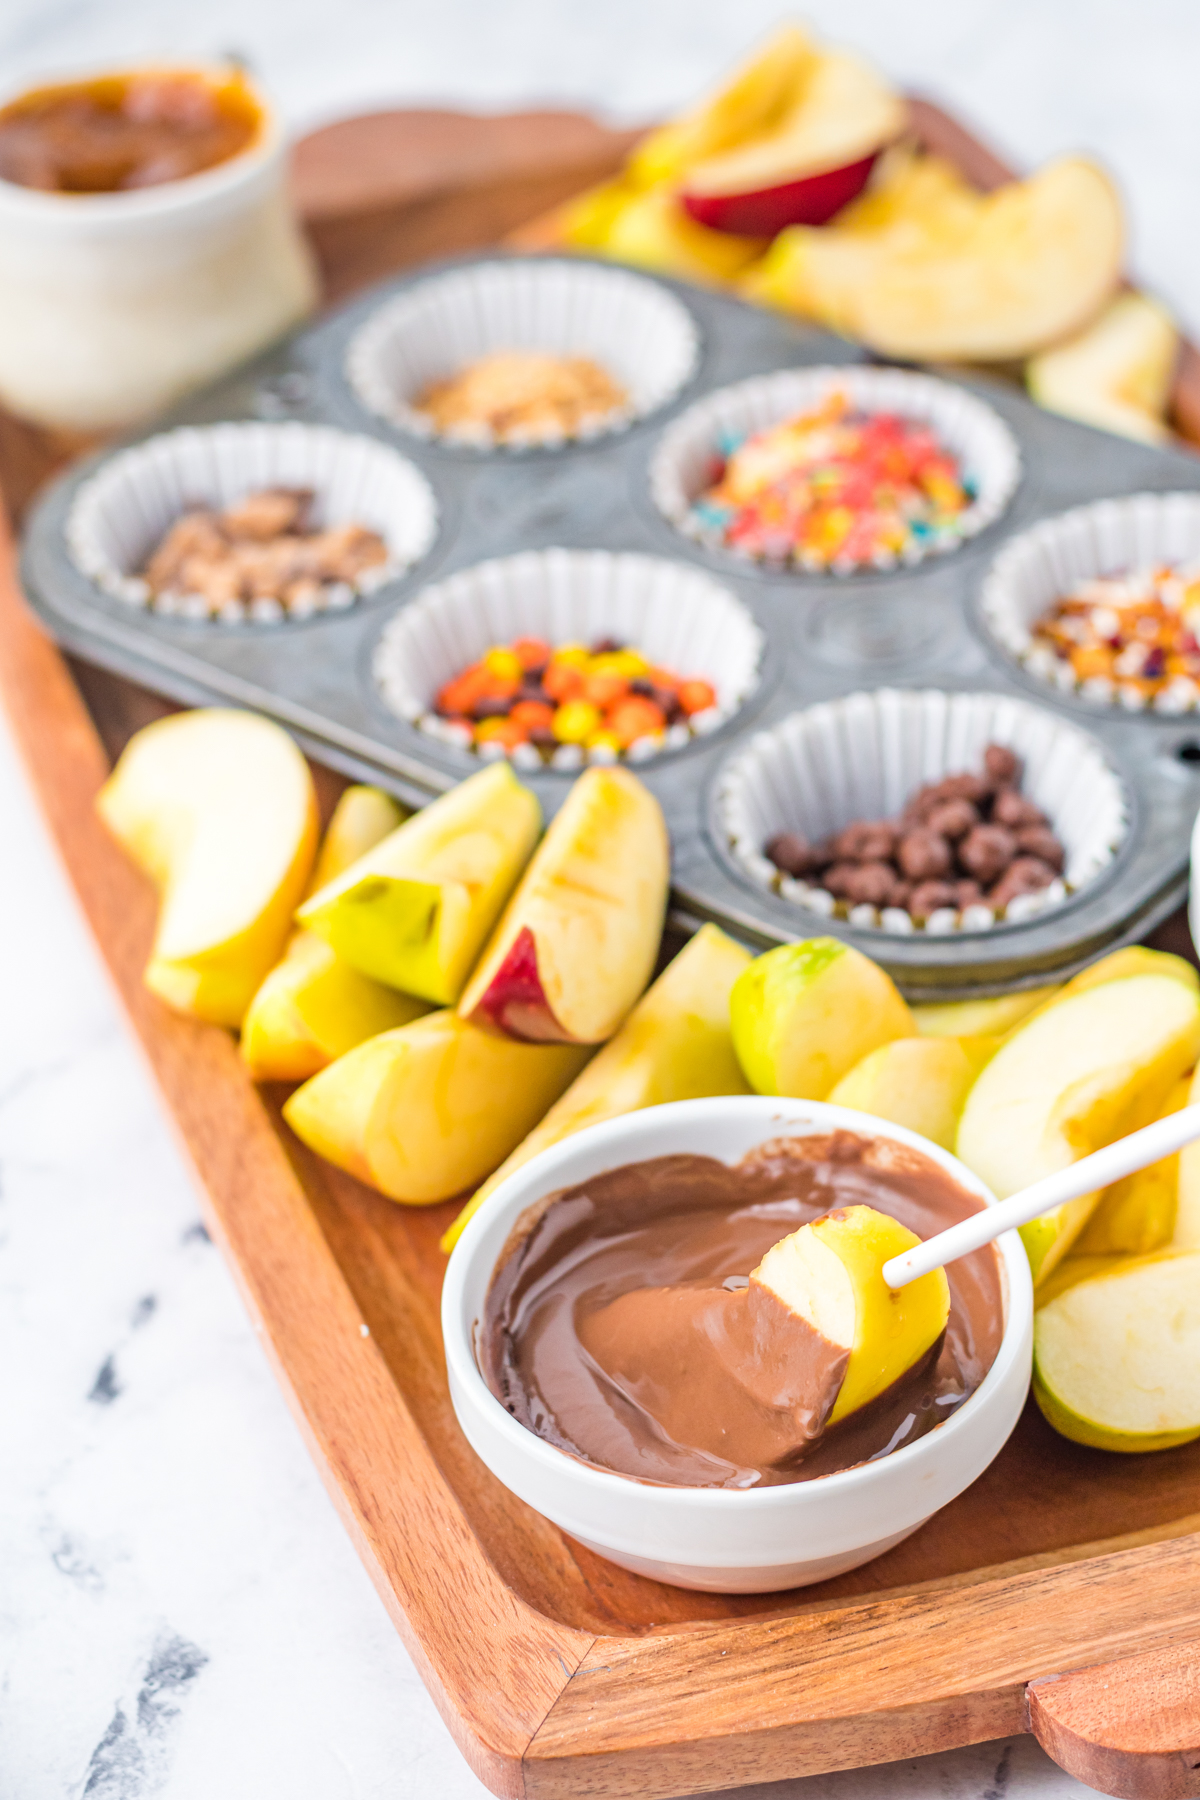 apple being dipped into melted chocolate